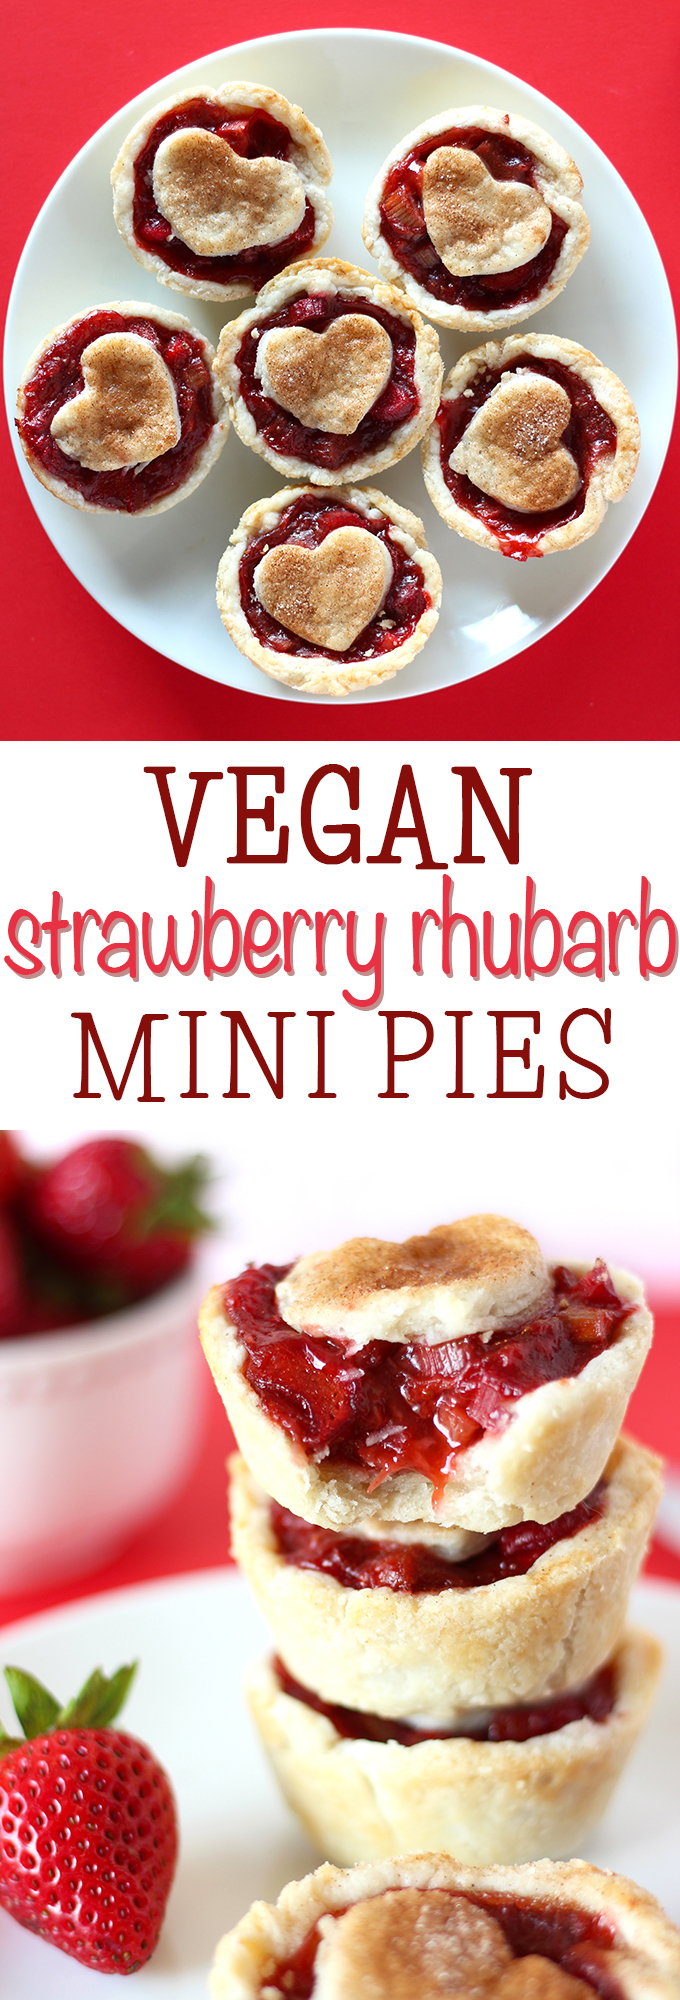 The dream team combination of strawberry and rhubarb come together in these amazing vegan mini pies! A delicious filling and a simple coconut oil crust make this classic dessert irresistible!